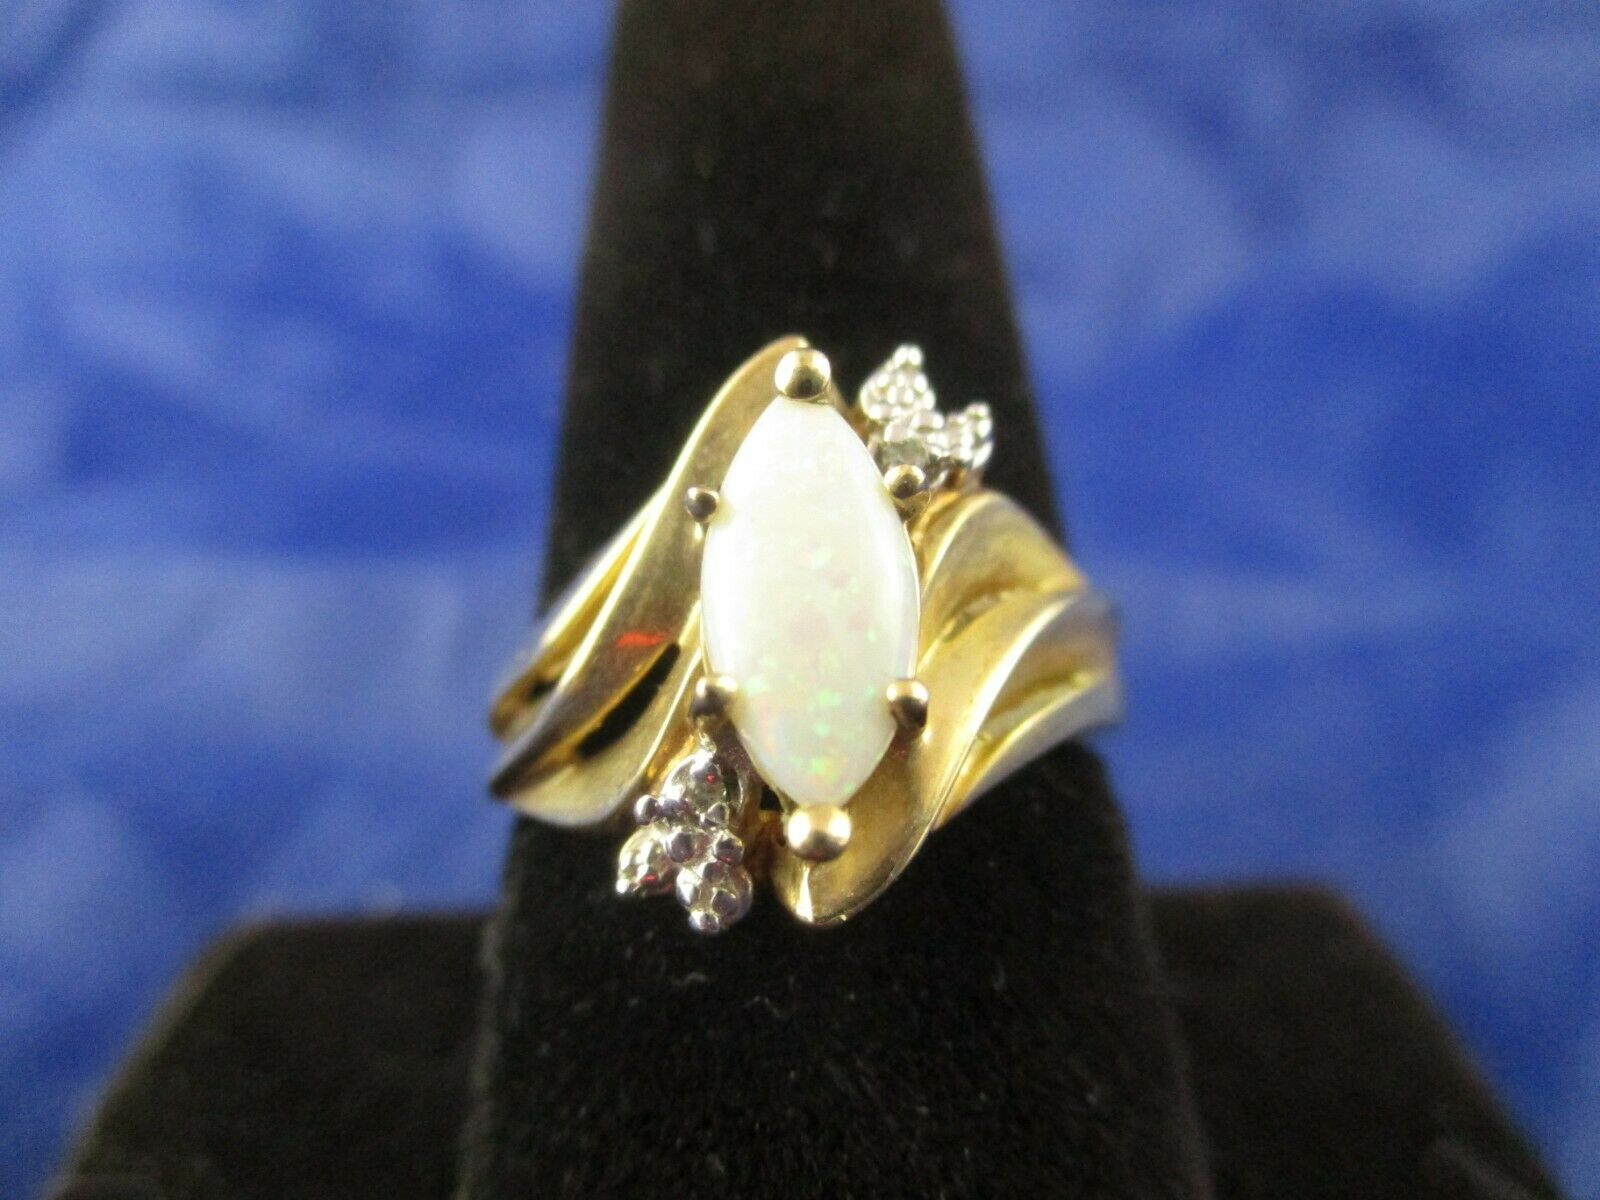 Vintage 10K Yellow gold Opal Ring.       Size 7.5       (MARKED 10K)